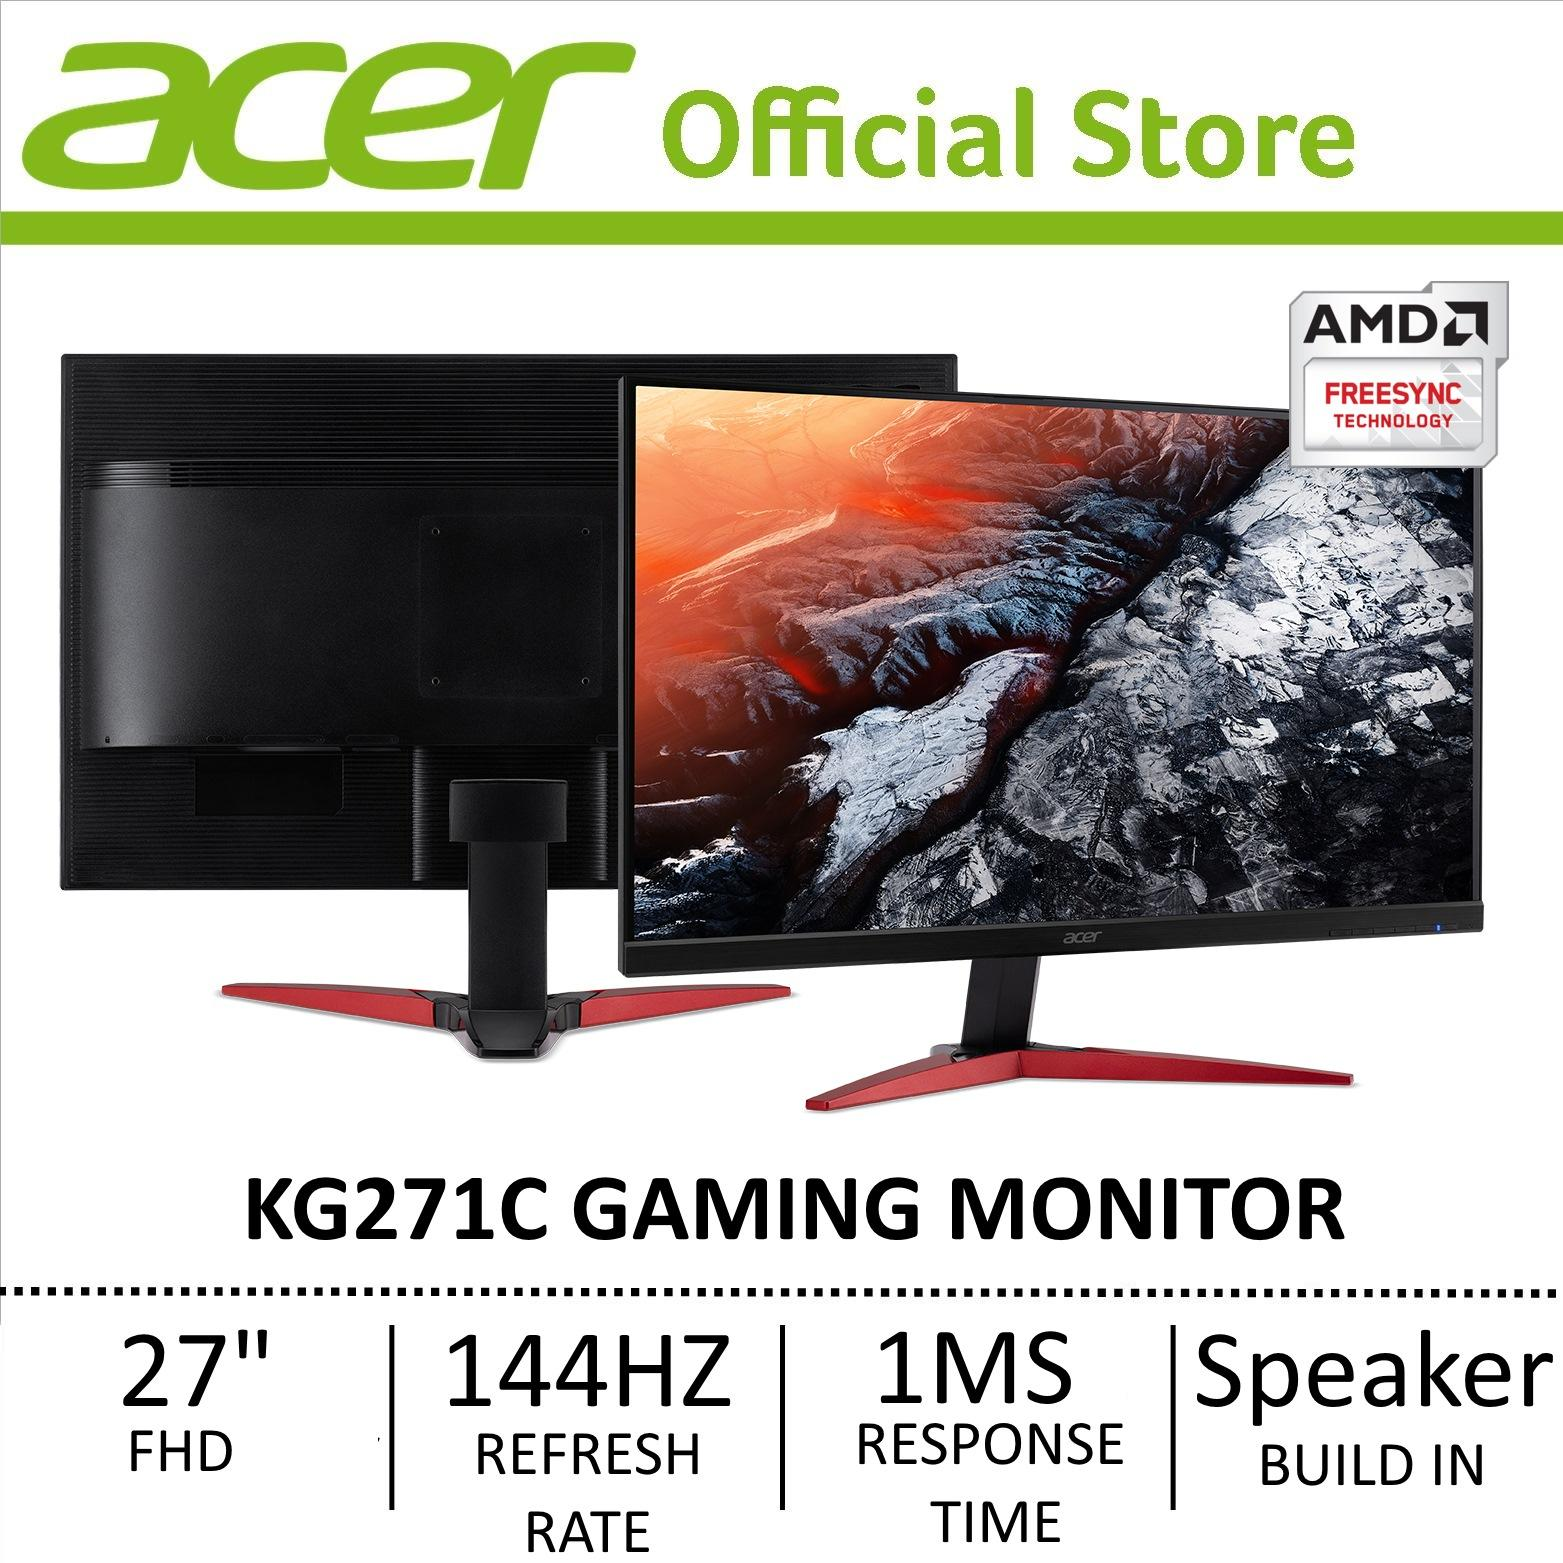 New Acer Kg271C Gaming Monitor With 144Hz Refresh Rate 1Ms Response Time